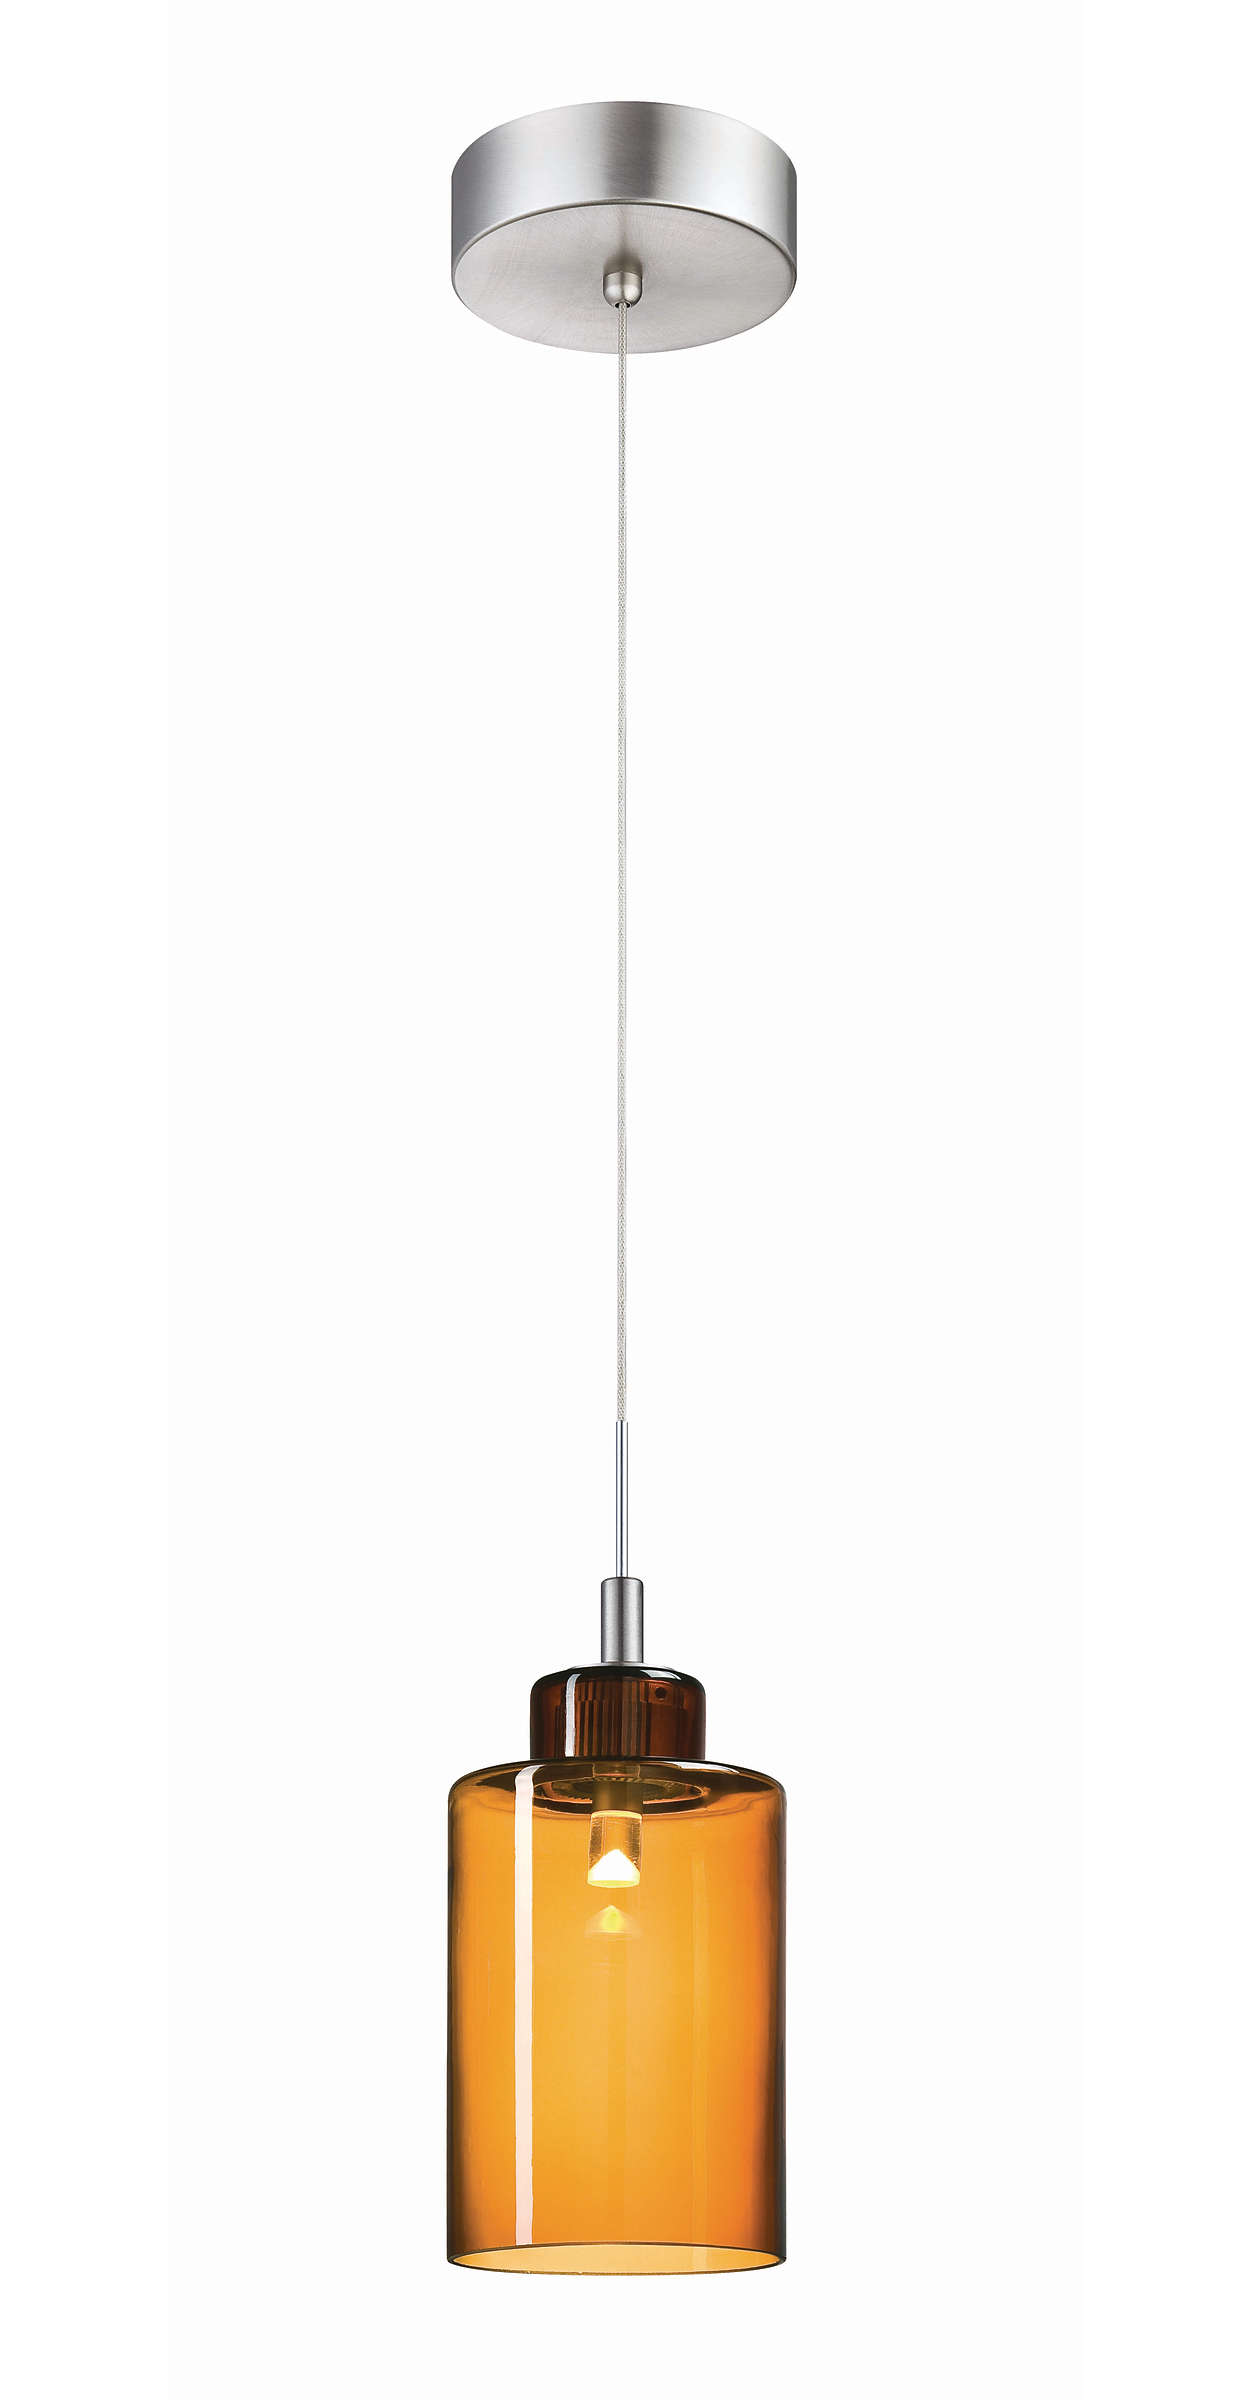 Harmonize 1-light LED pendant, Satin Nickel finish